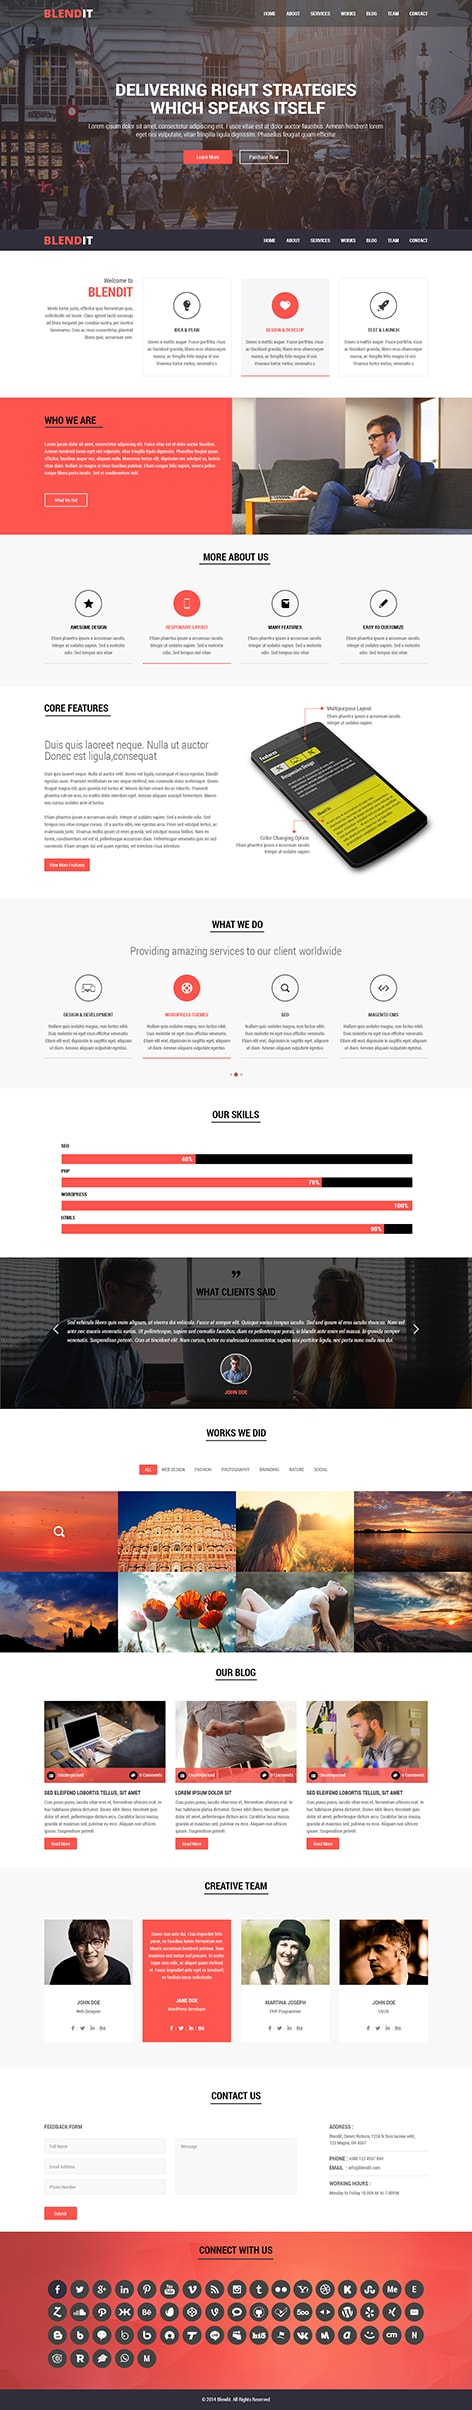 blendit WordPress theme